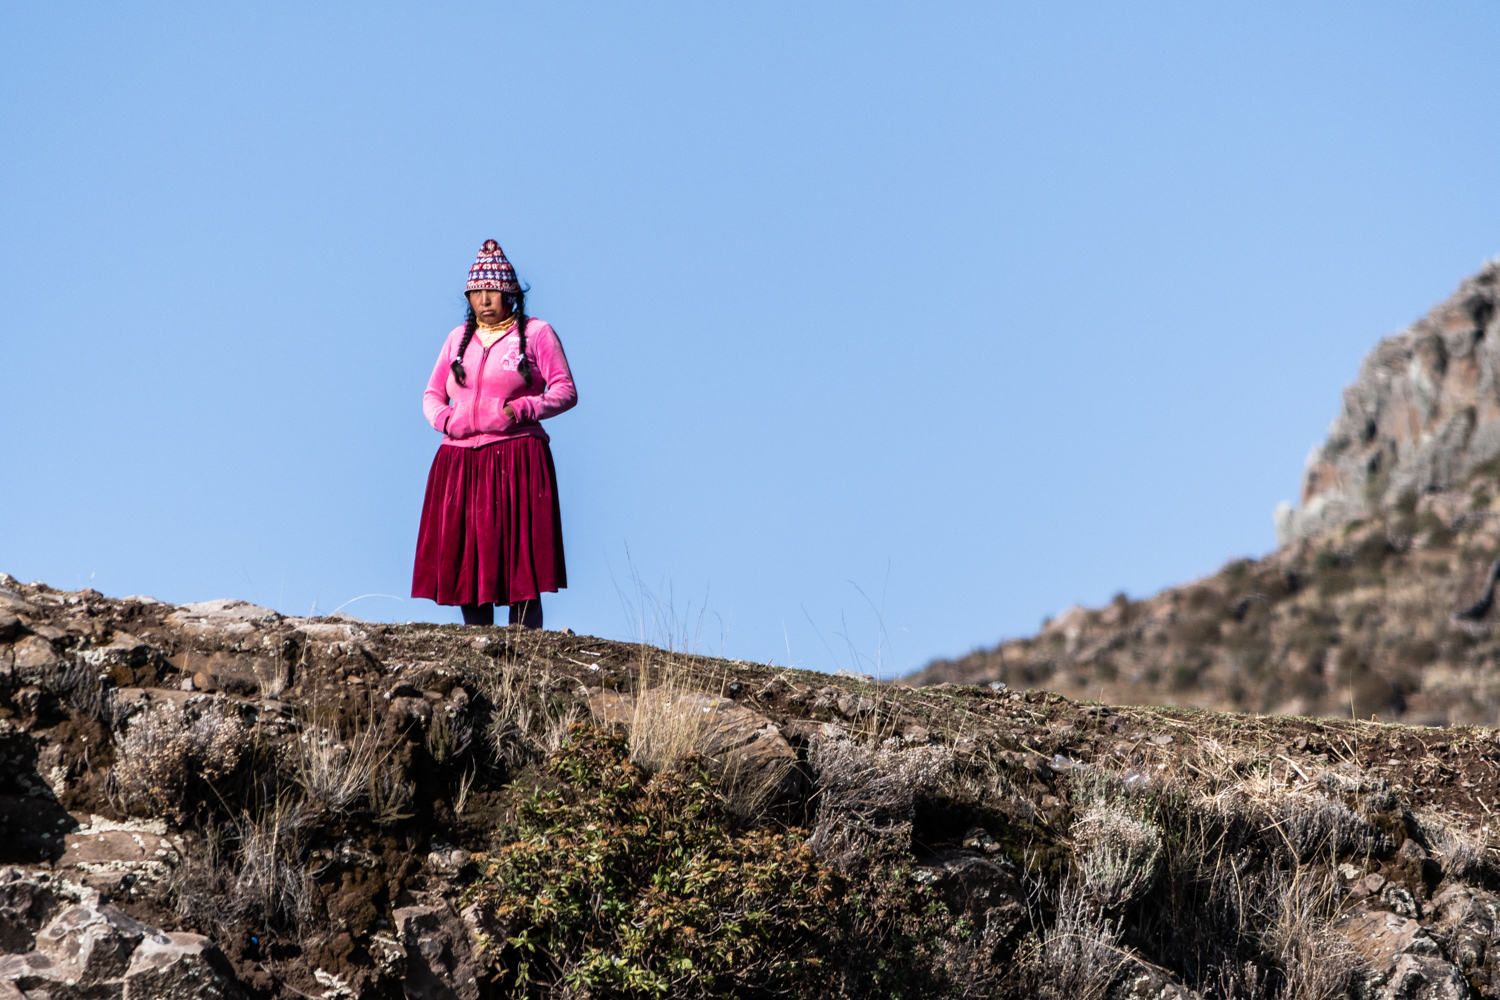 The Aymara-speaking islanders are distinct from most of the surrounding Quechua-speaking island communities and maintain a strong sense of group identity.